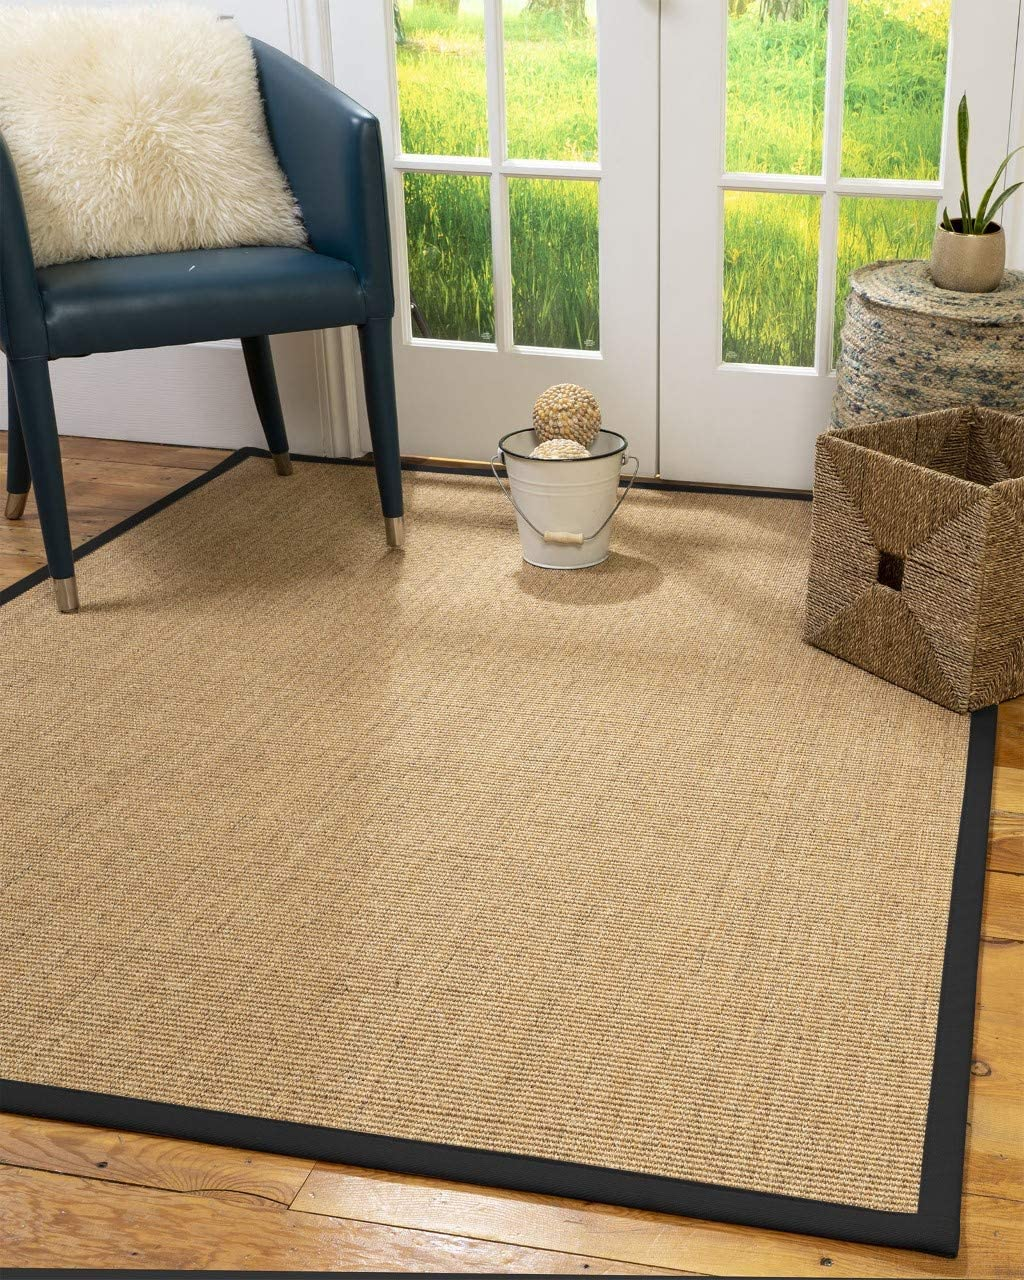 Natural Area Rugs 100 Natural Fiber Handmade Melrose, Beige Sisal Rug, 2 x 3 Black Border